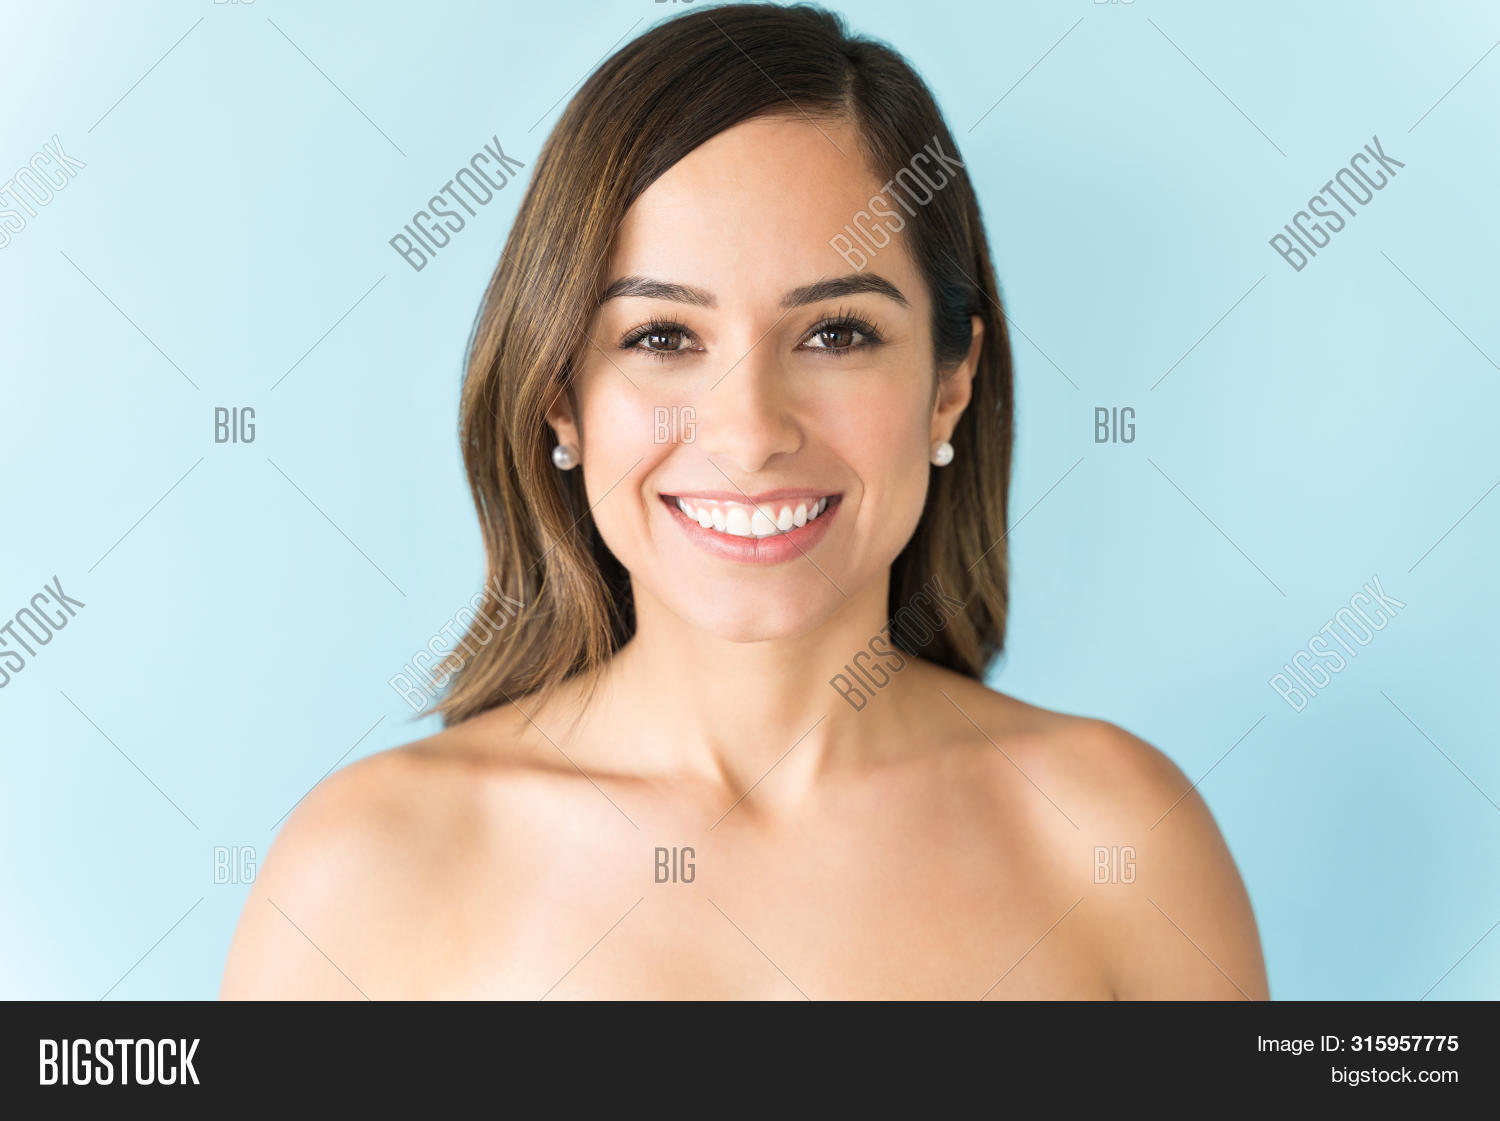 30s,Adult,Attractive,Background,Bare,Beautiful,Beauty,Blue,Brown,Brunette,Caucasian,Closeup,Complexion,Elegance,Face,Flawless,Front,Glowing,Hair,Happy,Headshot,Healthcare,Isolated,Long,Looking,Mid,One,Perfect,Person,Portrait,Shirtless,Shoulder,Skin,Smiling,Smooth,Studio,View,Wellness,Woman